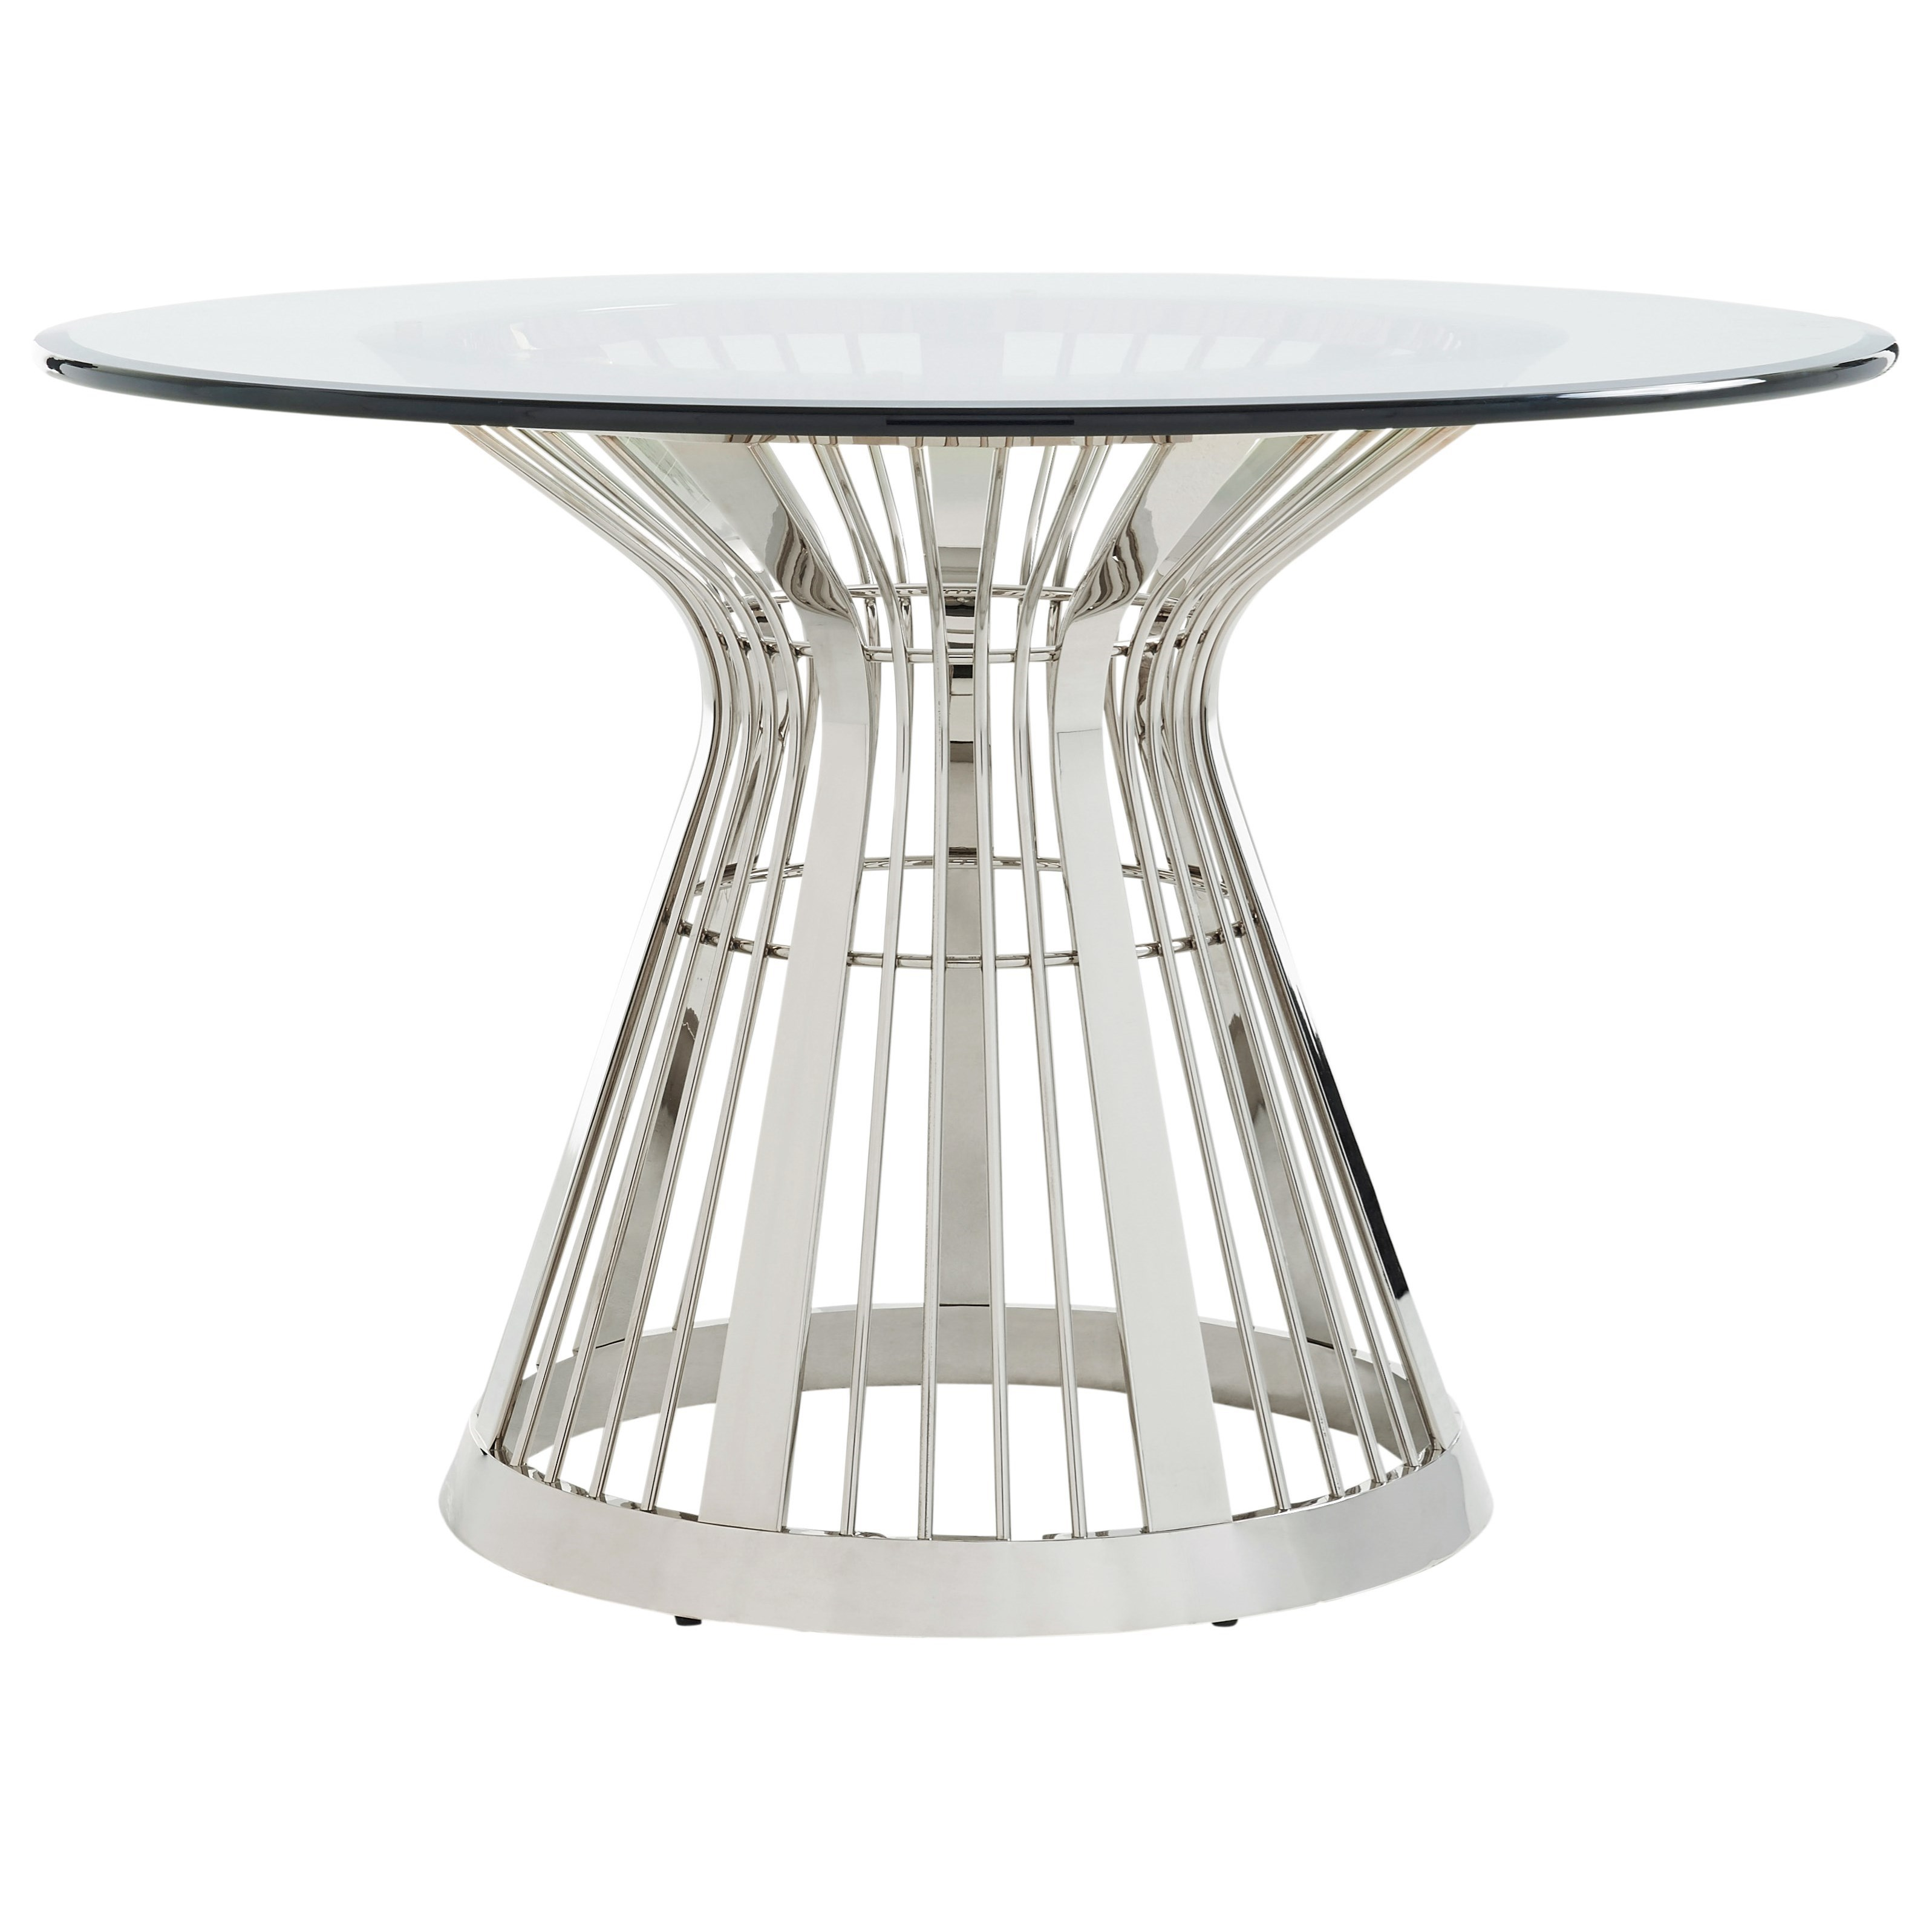 """Ariana Riviera Center Table w 48"""" Glass Top by Lexington at Fisher Home Furnishings"""